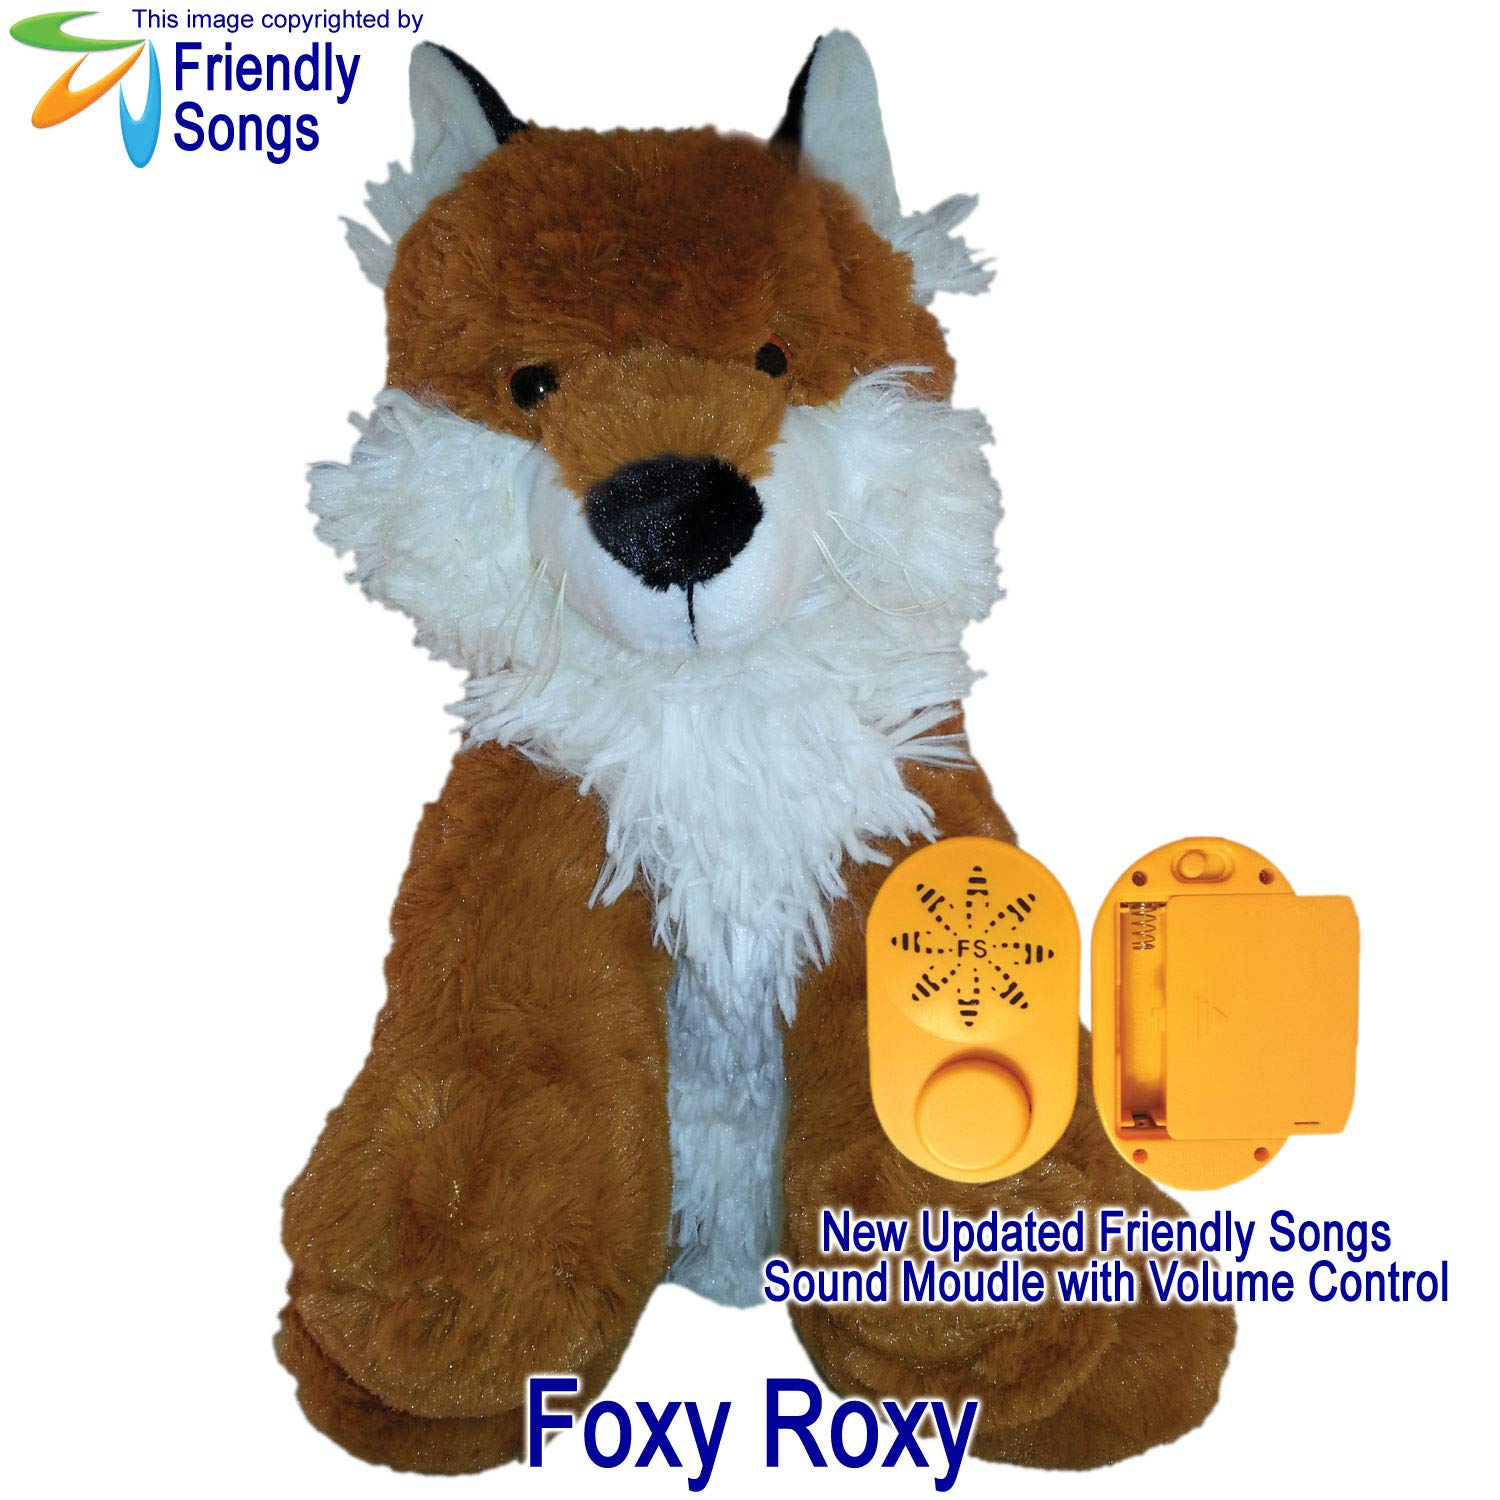 Friendly Songs What Does The Fox Say - 19'' Singing Stuffed Plush Animal Called Foxy Roxy by Friendly Songs (Image #1)